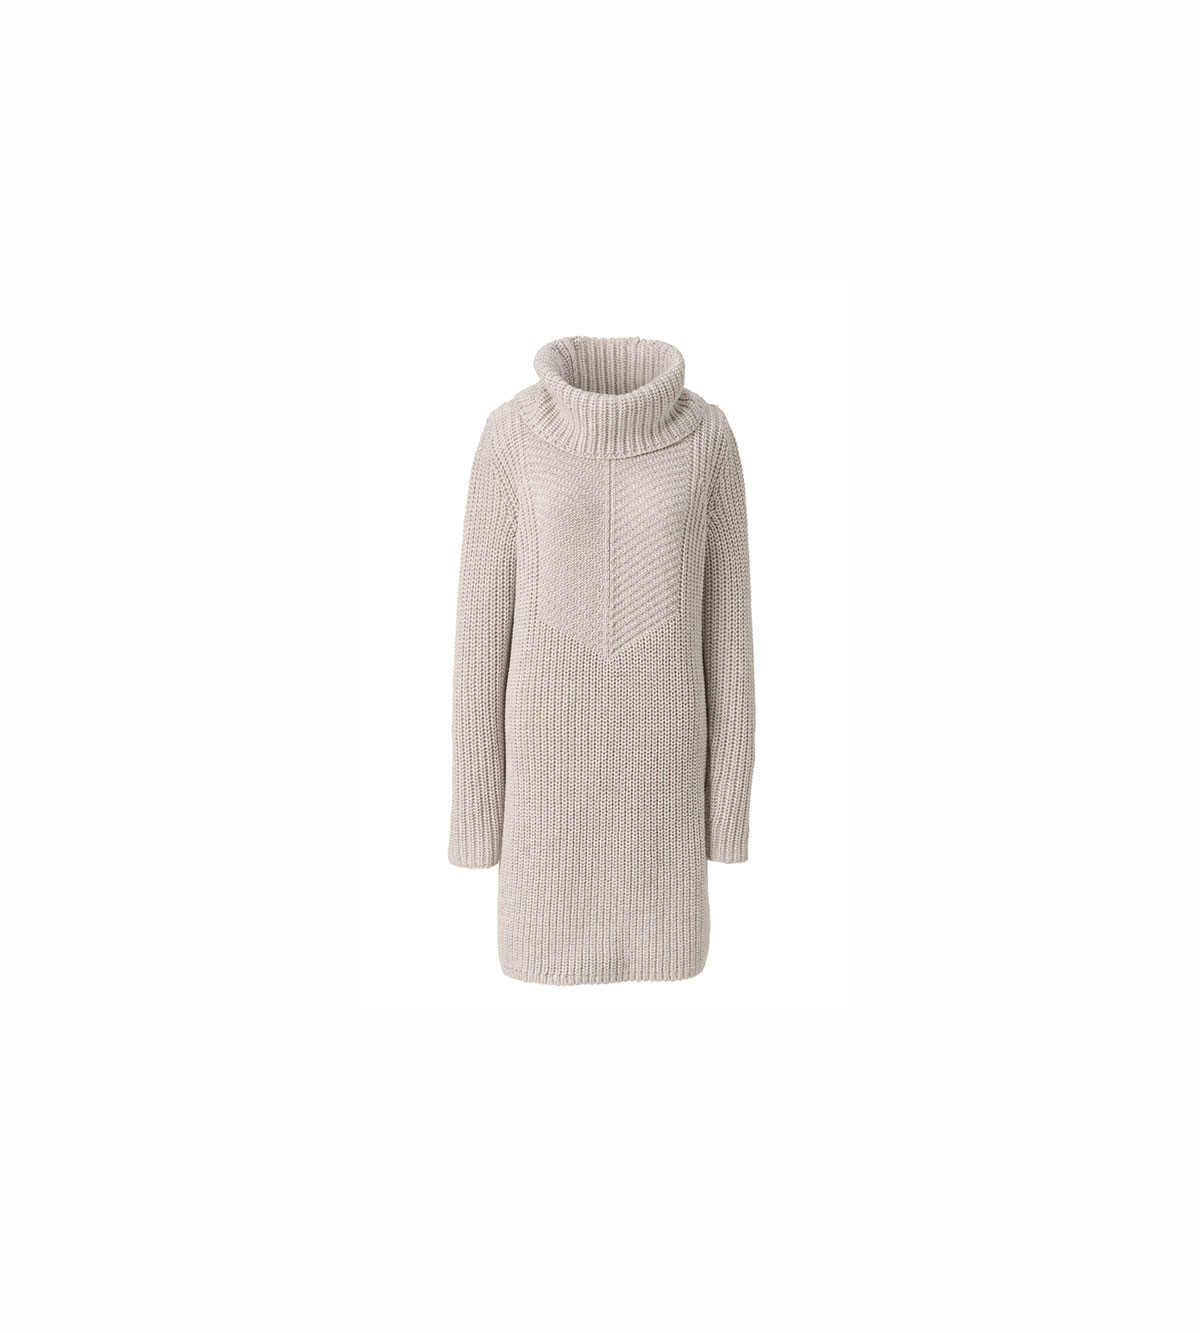 Merino Blend Shaker Cowl Neck Sweater Dress